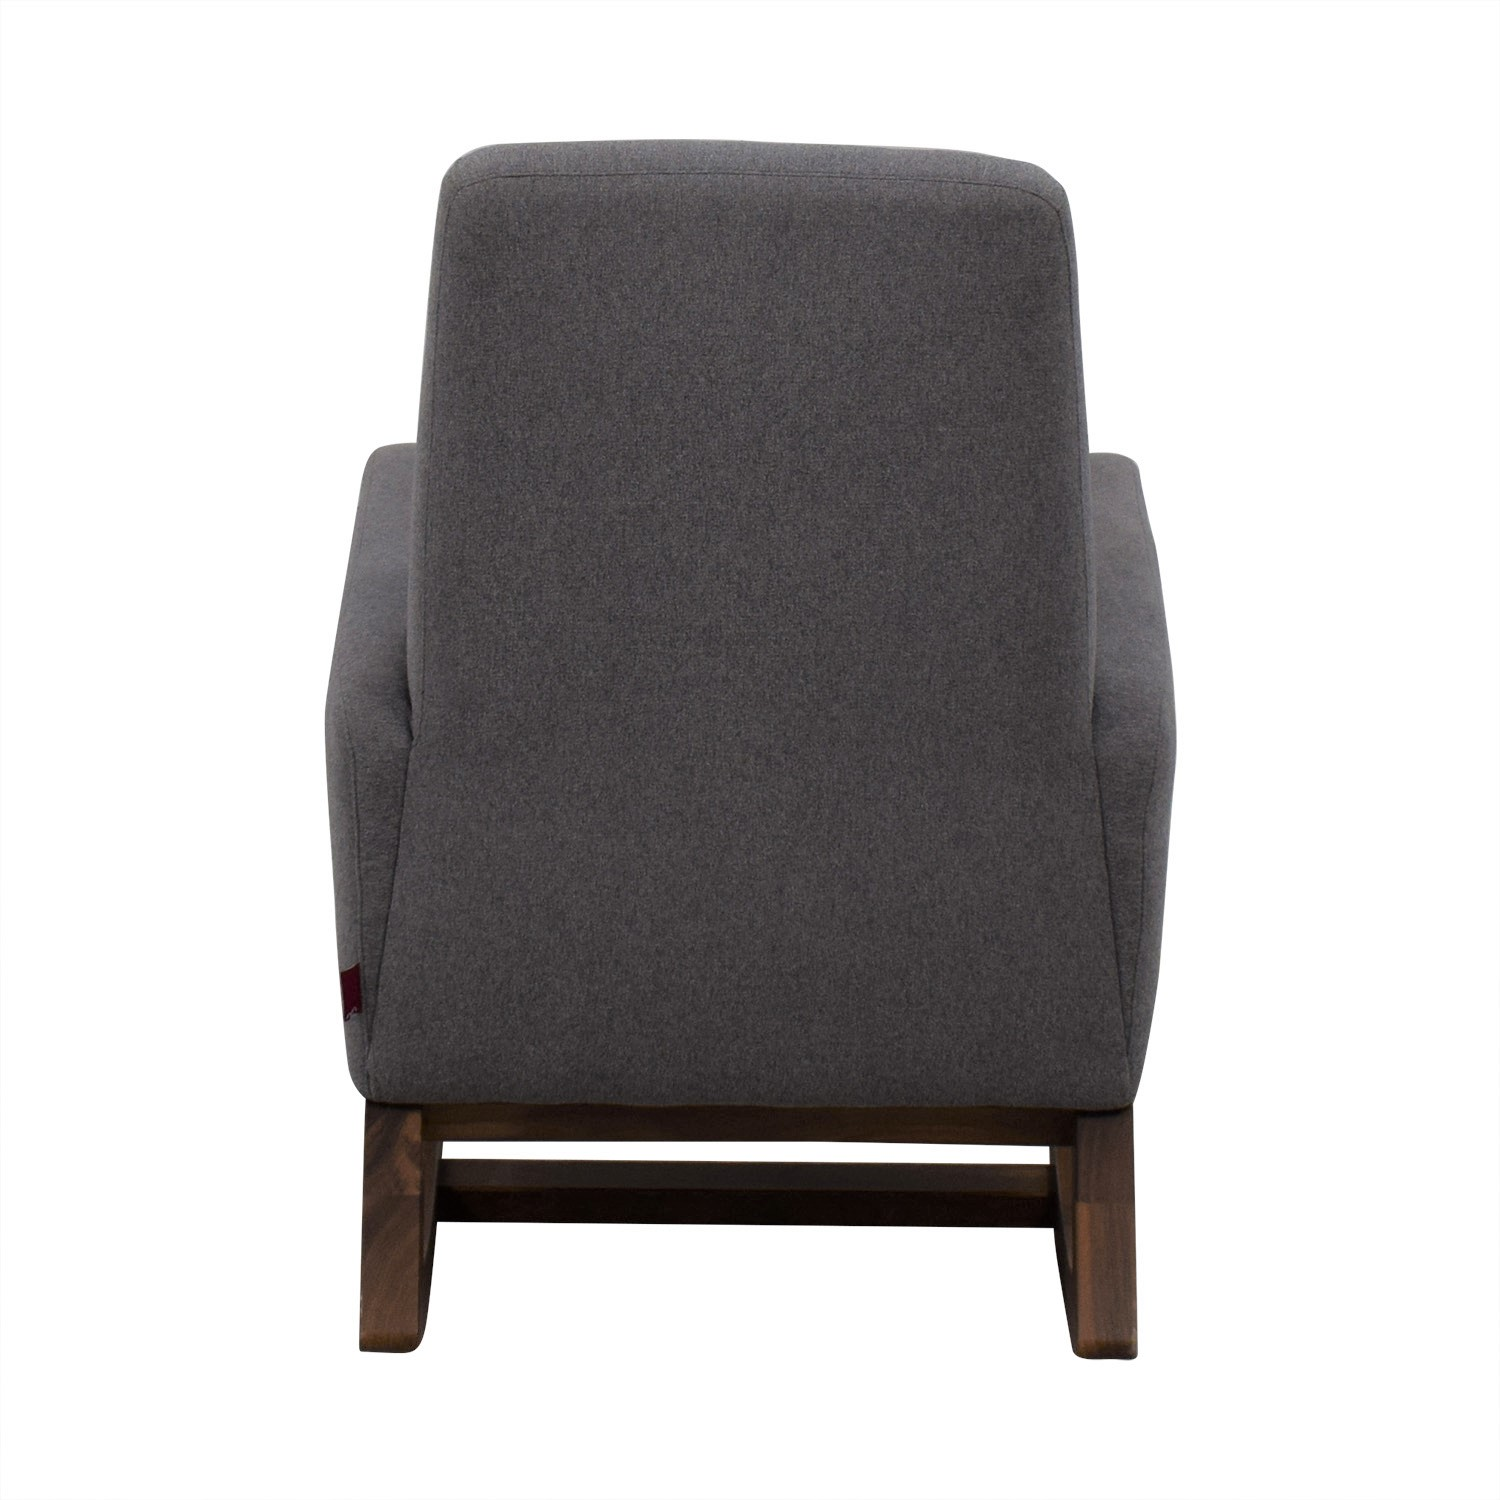 Monte Design Monte Design Joya Rocker Accent Chair light gray/brown